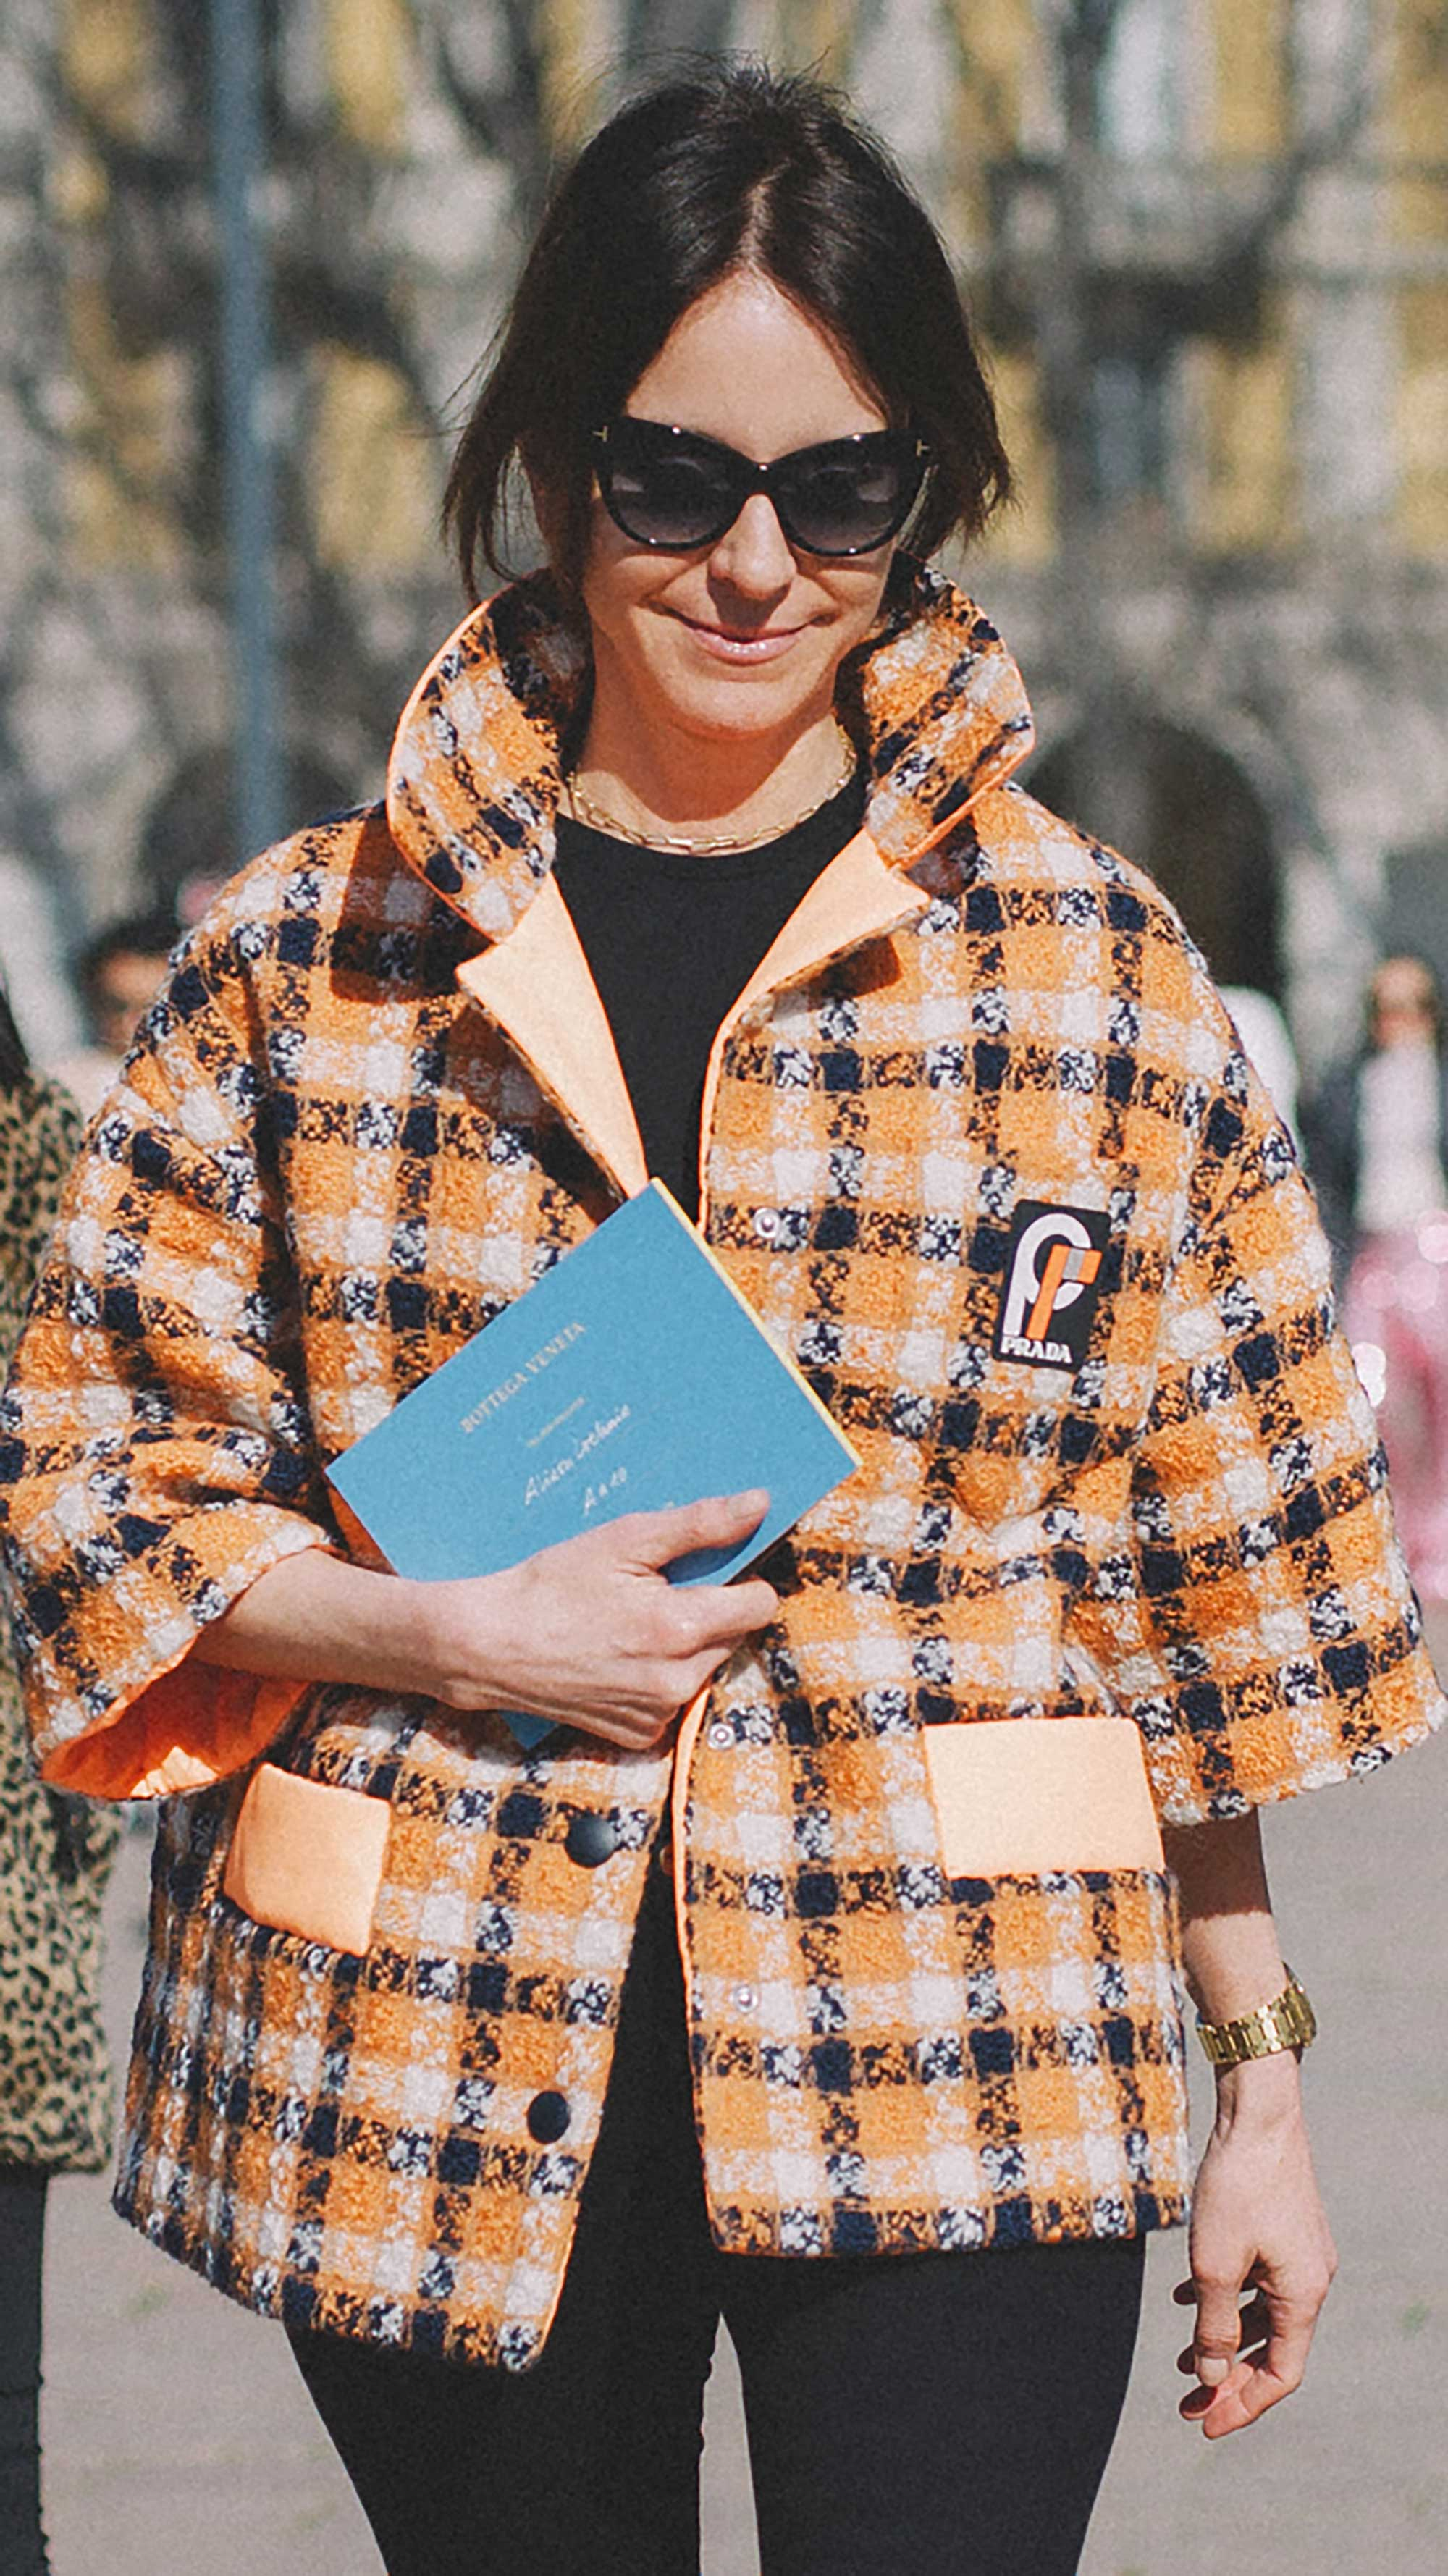 est outfits of Milan Fashion Week street style day two MFW FW19 36.jpg